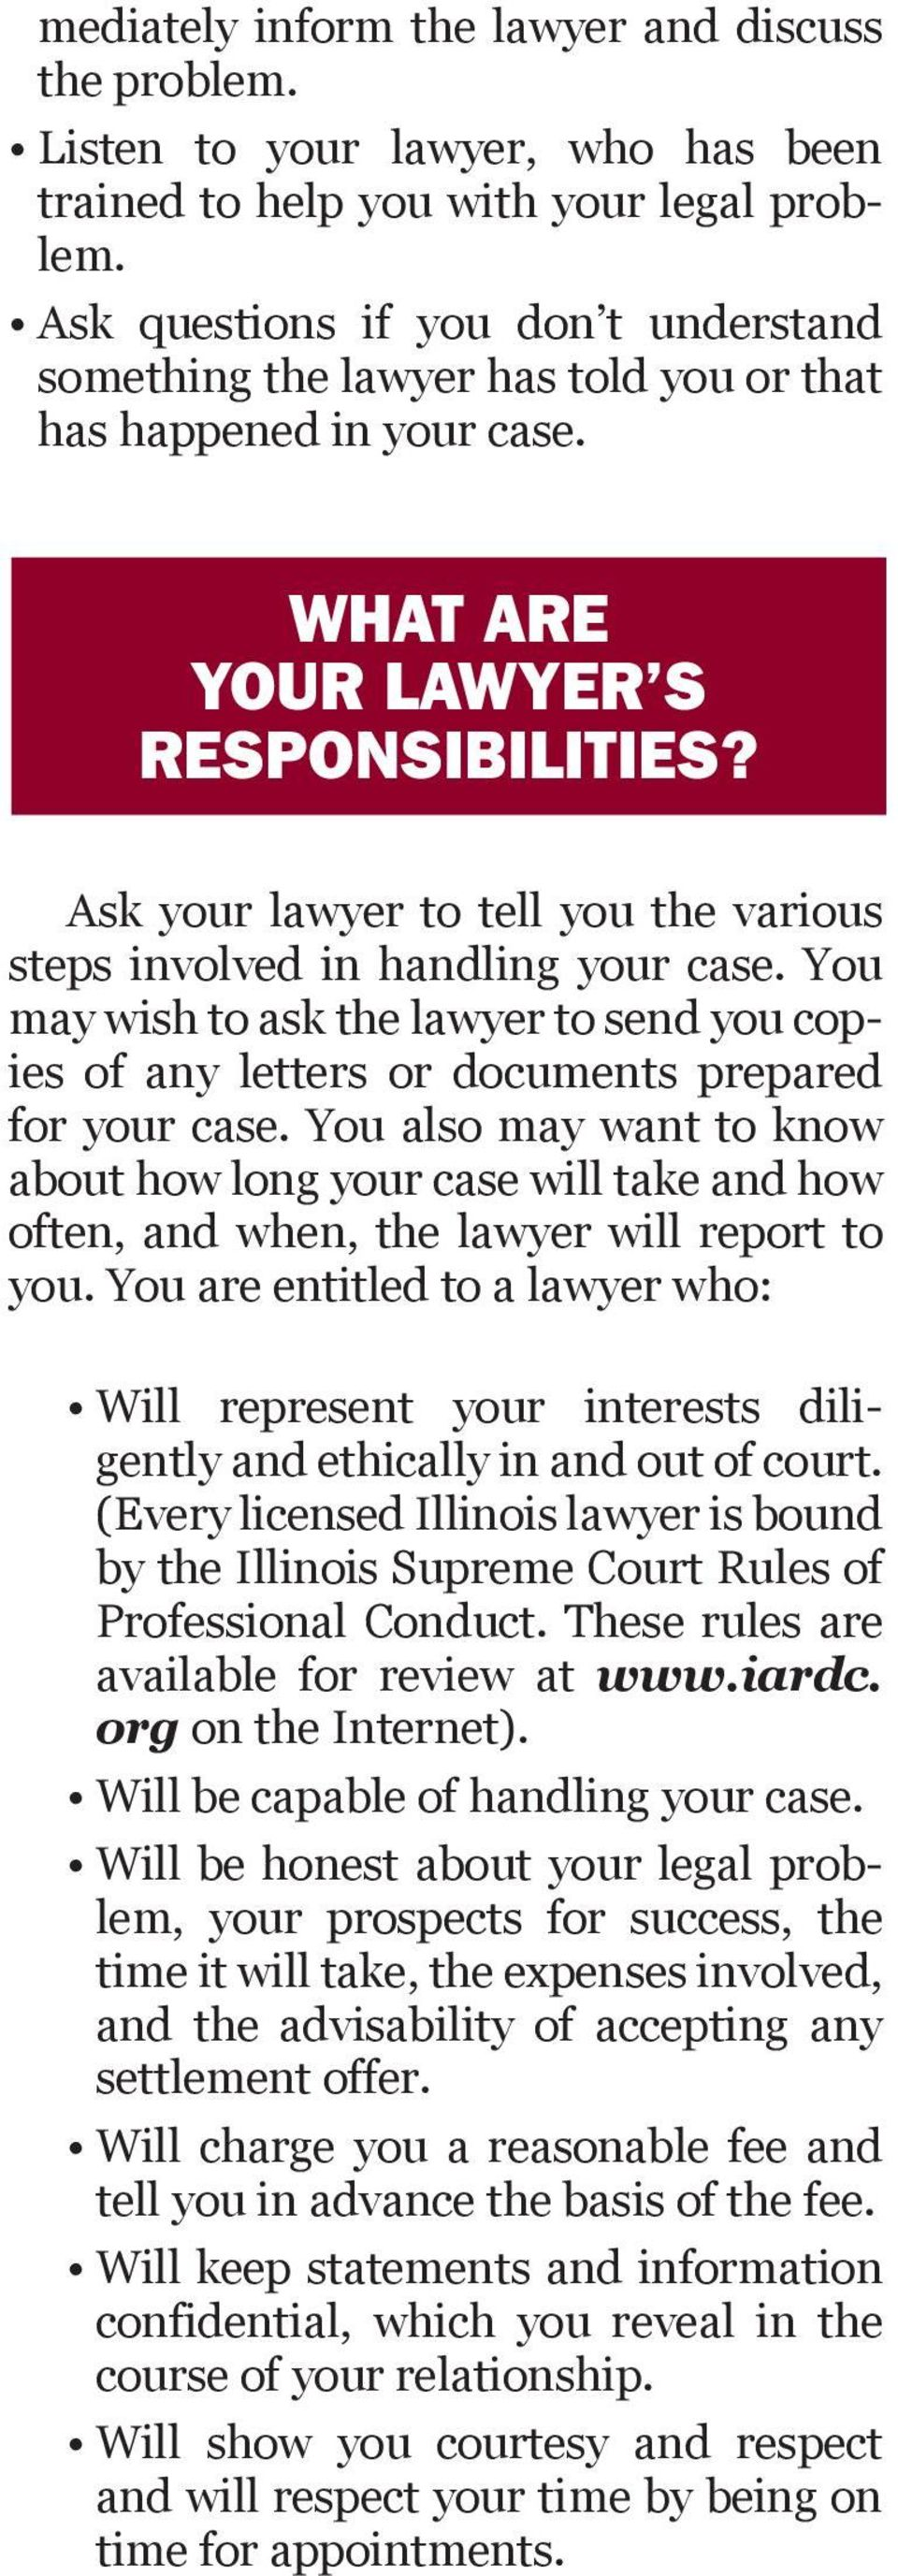 Ask your lawyer to tell you the various steps involved in handling your case. You may wish to ask the lawyer to send you copies of any letters or documents prepared for your case.